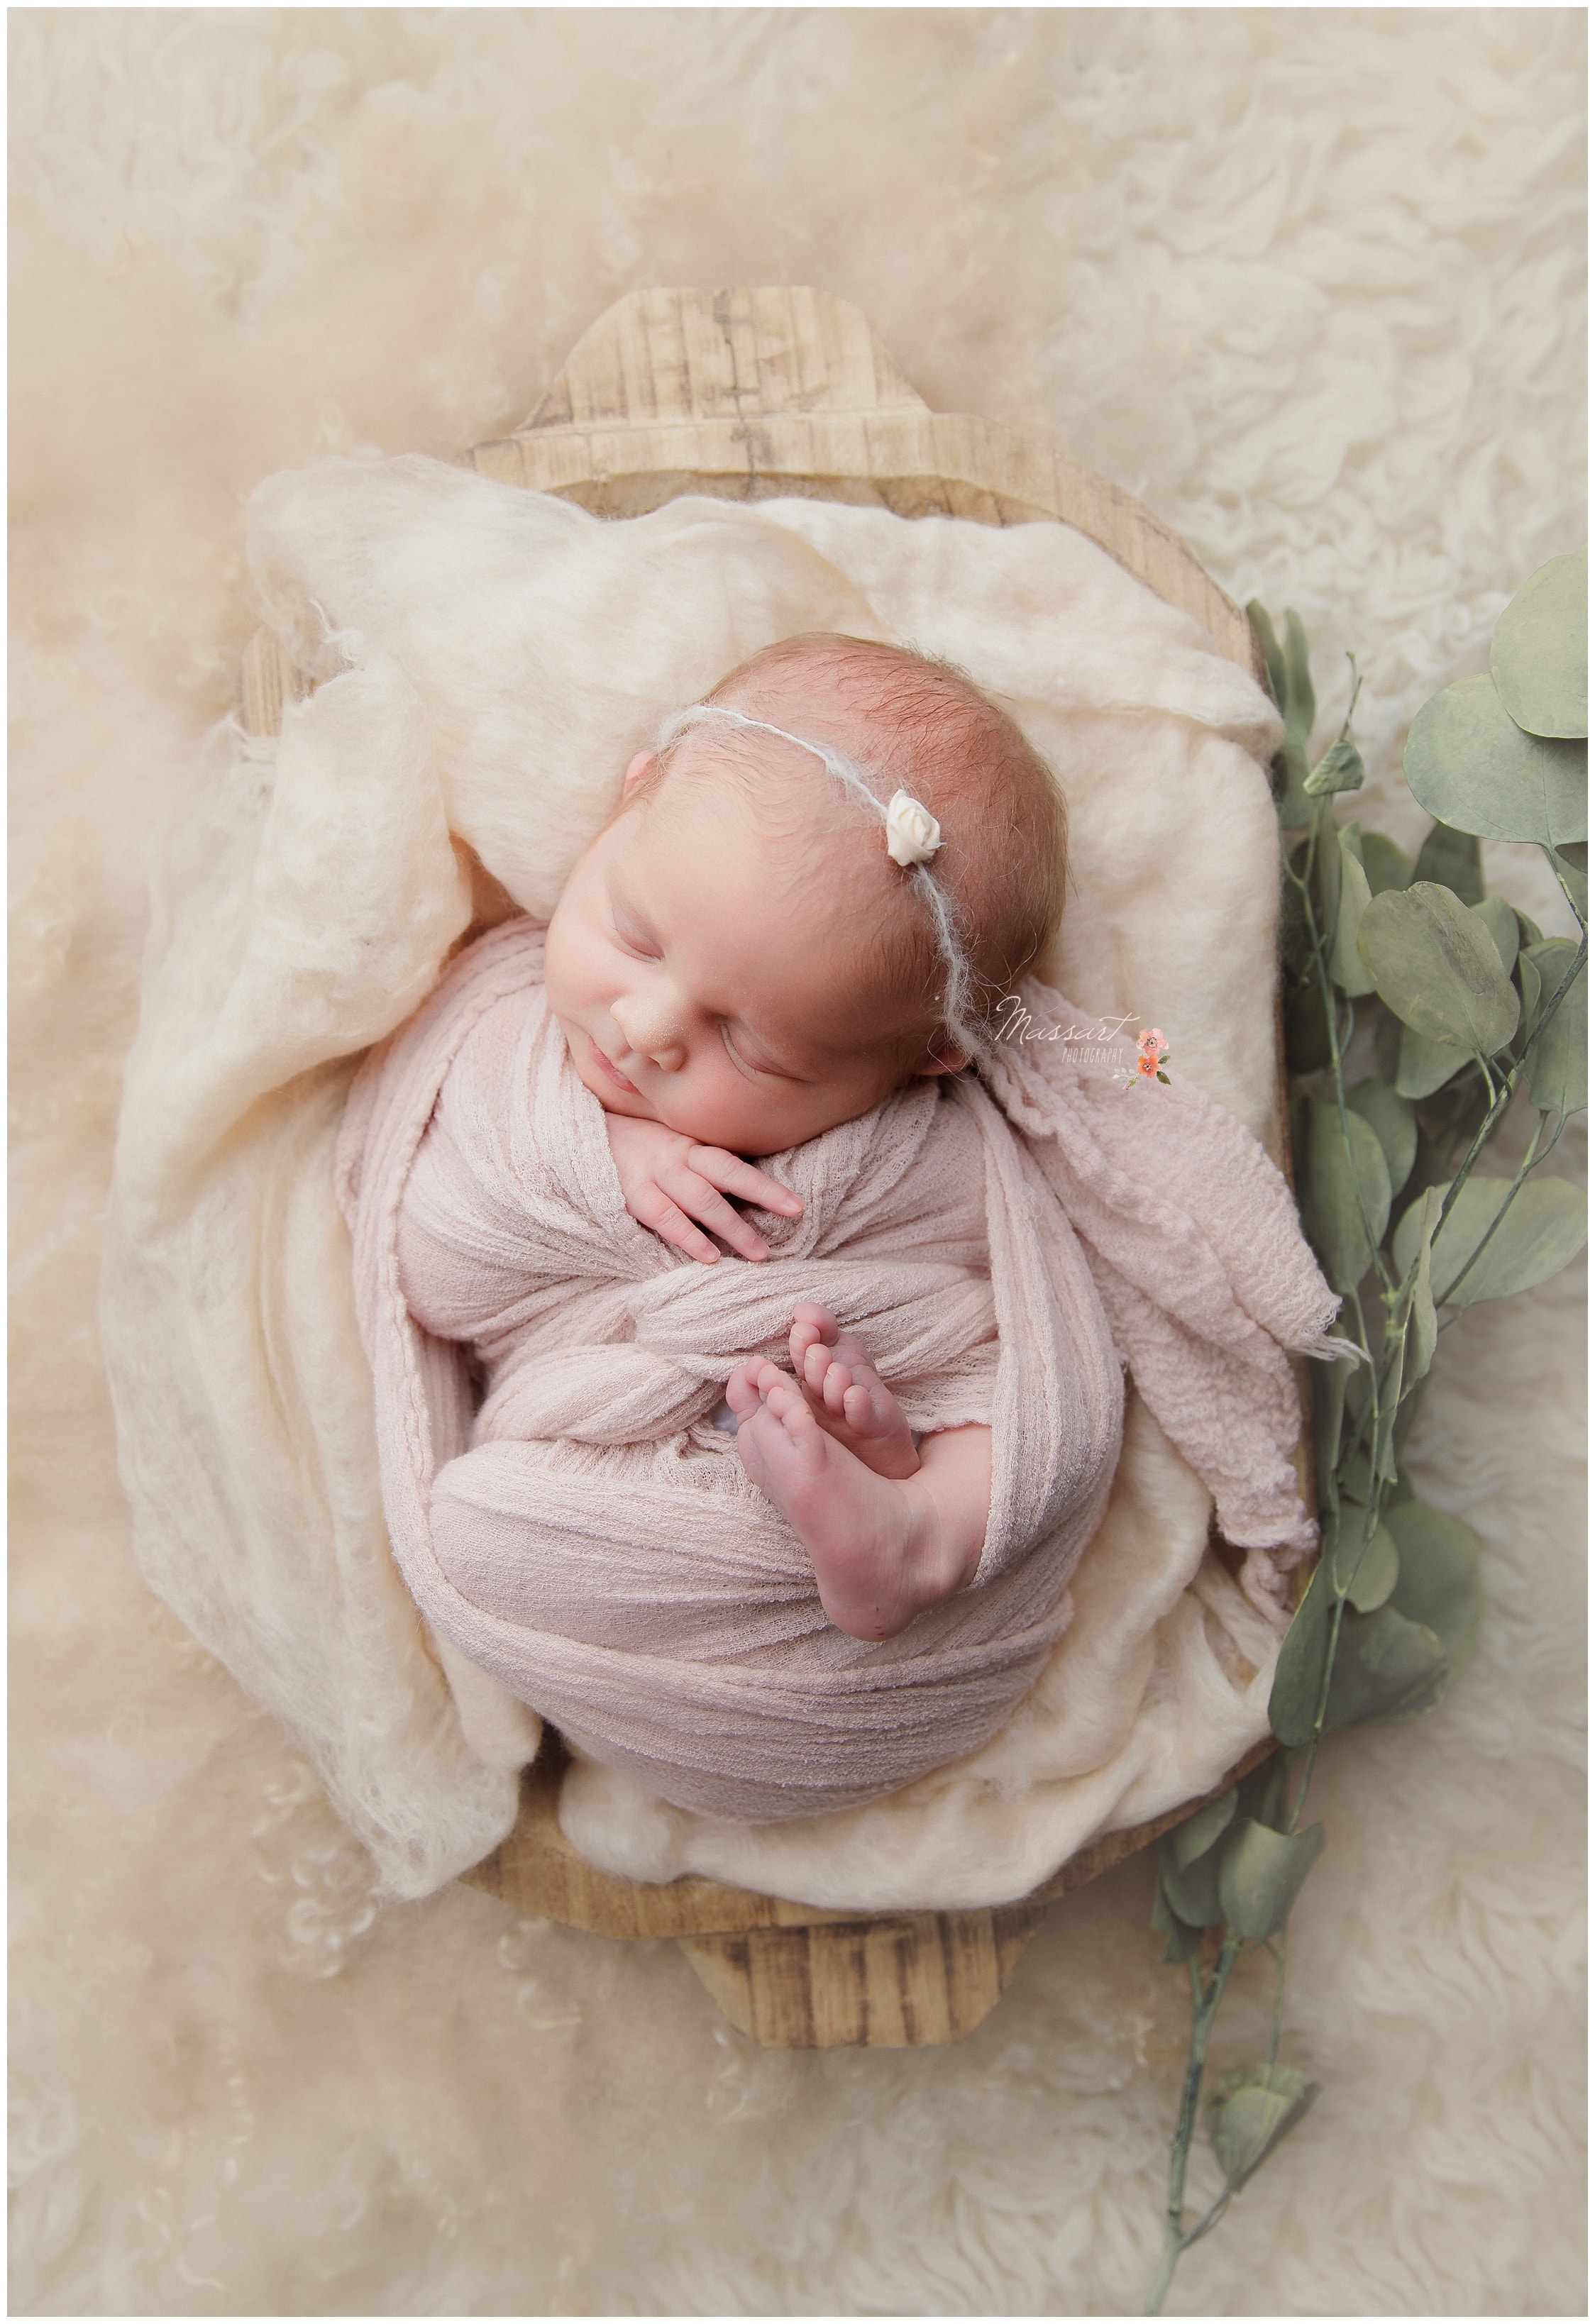 Newborn baby girl lays in white basket with pink blankets during her newborn portrait session photographed by Massart Photography Rhode Island